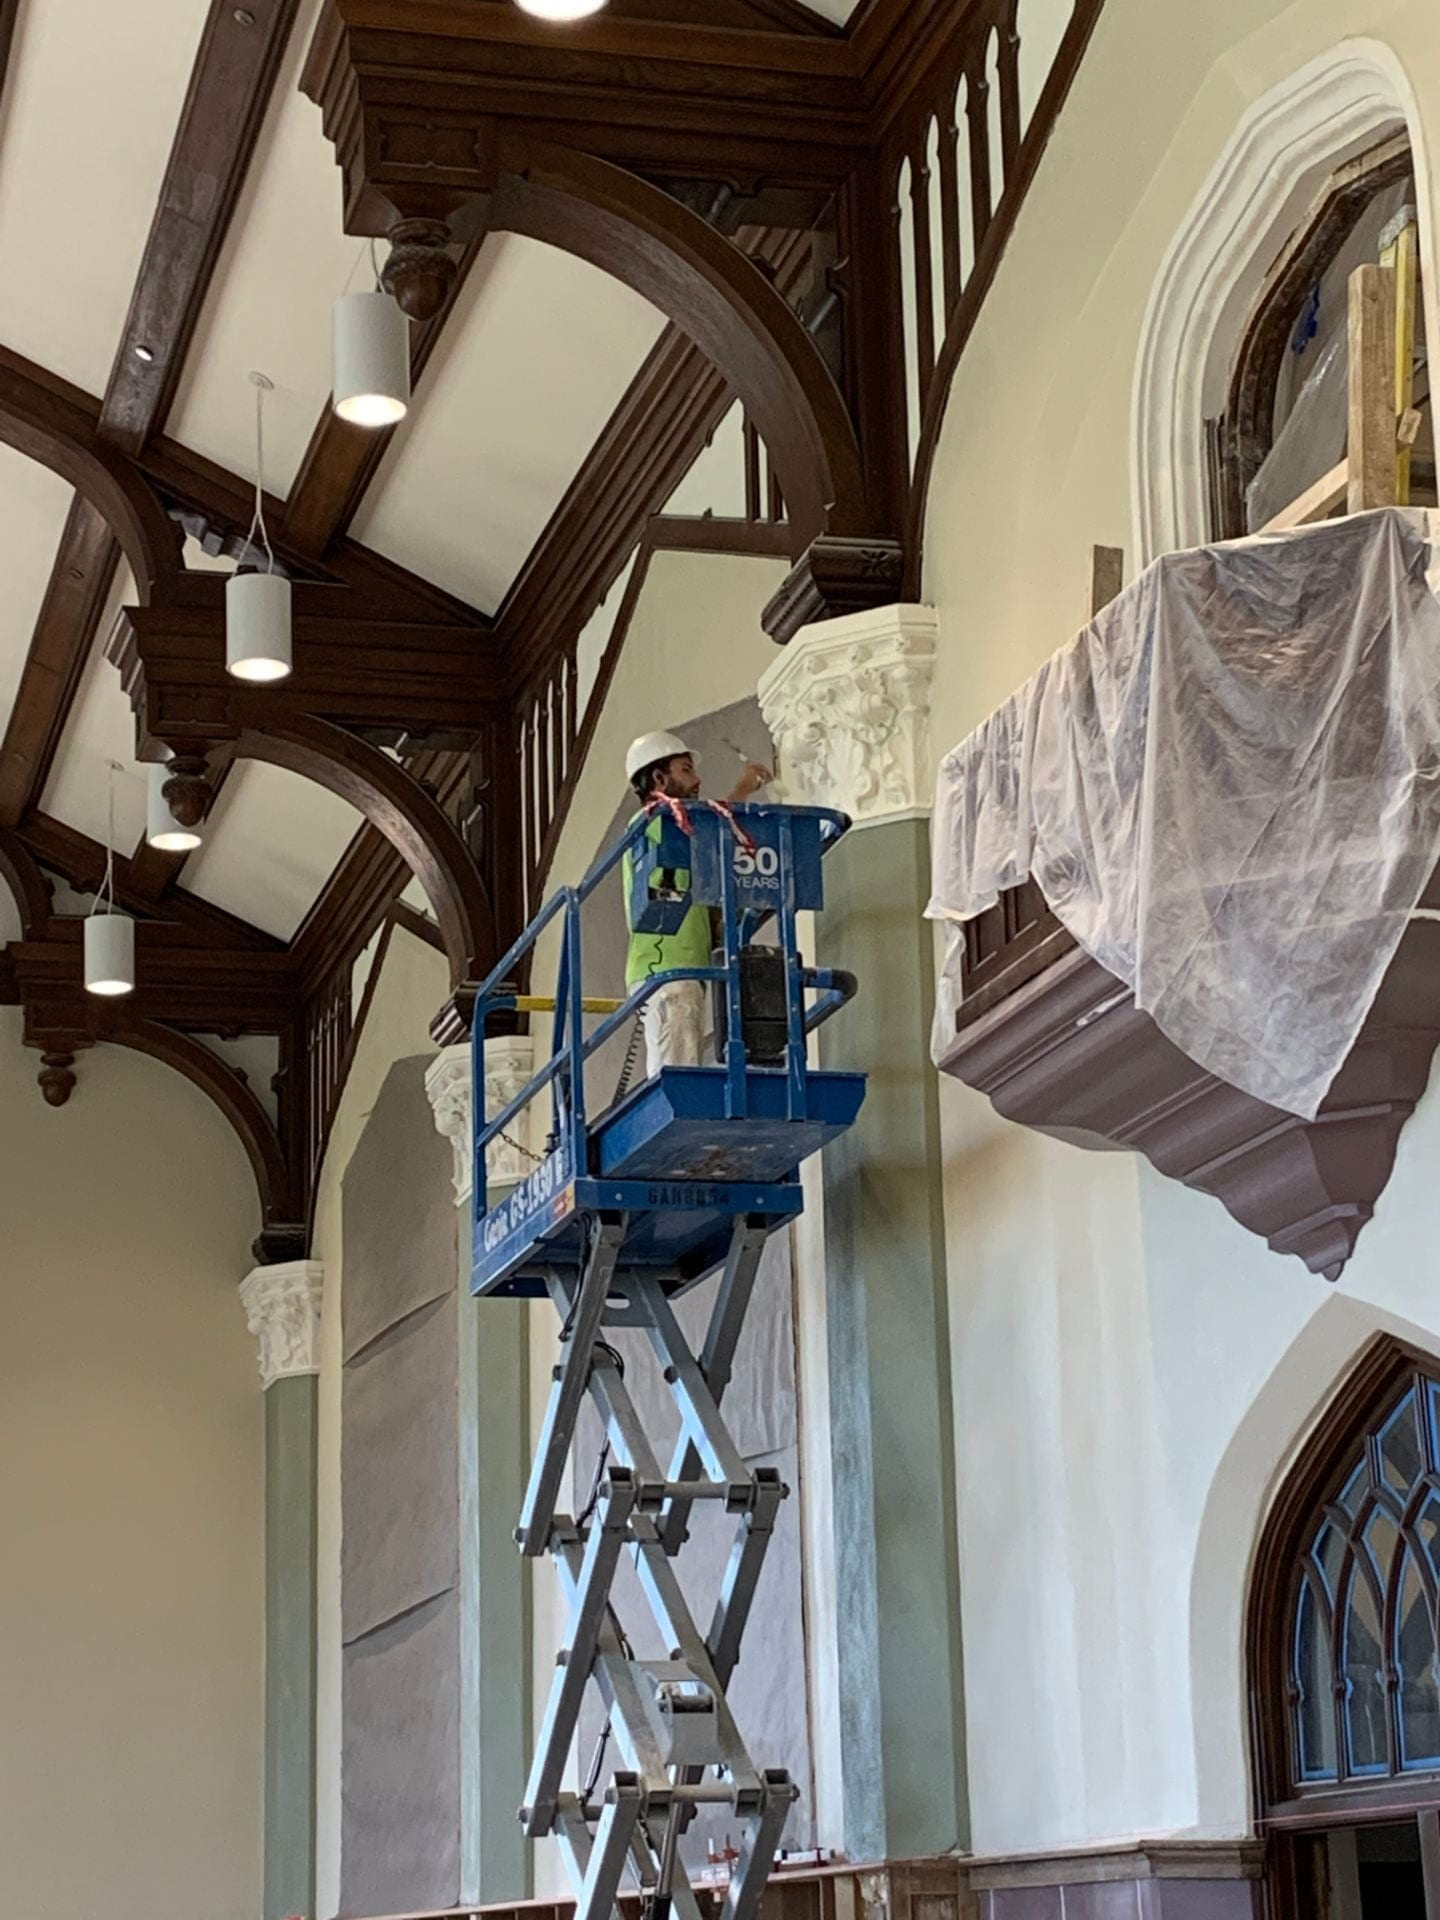 A crew member works on painting the cornices in the Great Room.